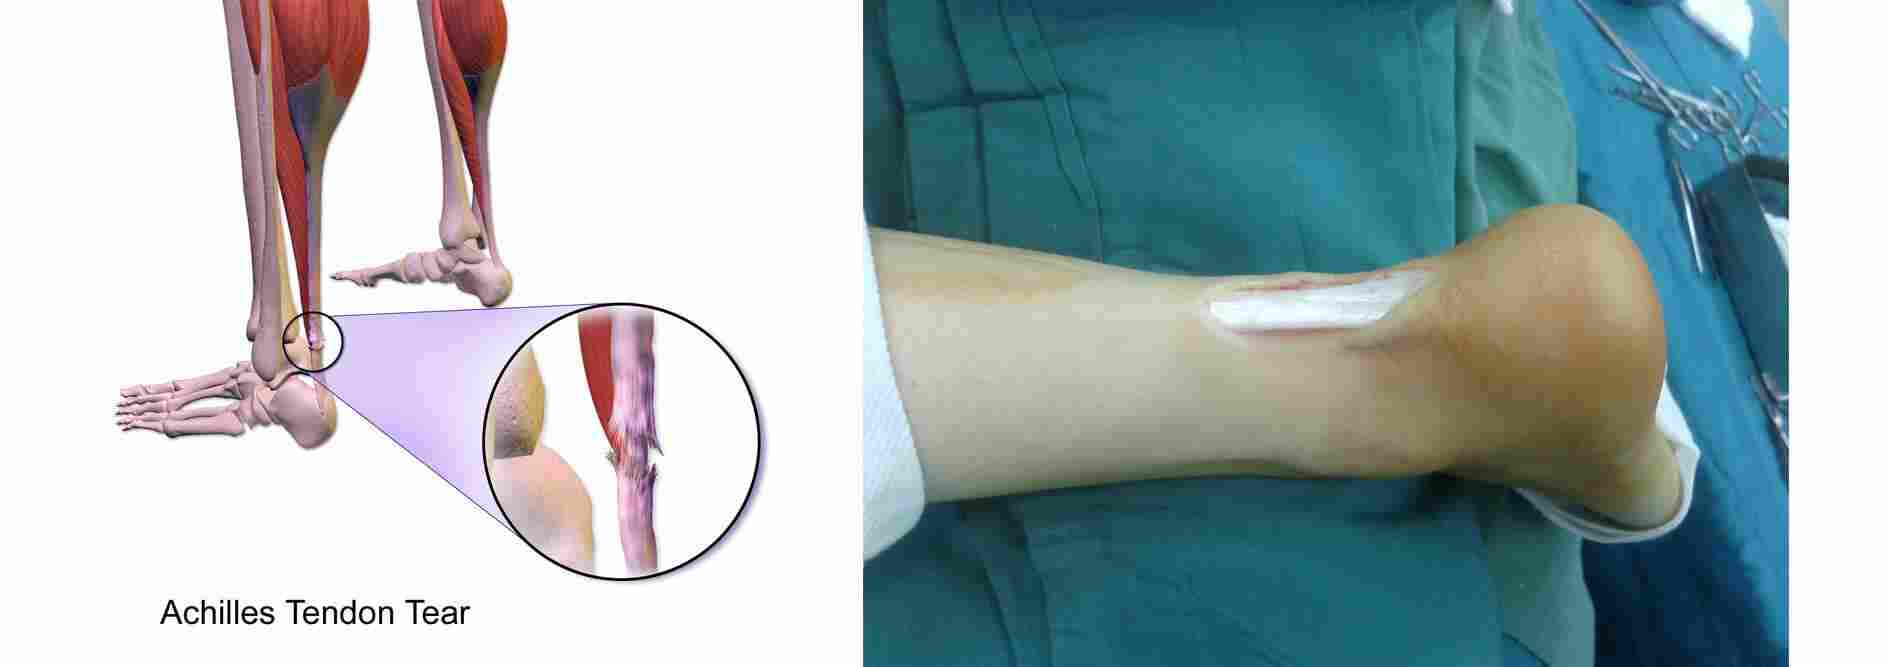 Achilles-tendon-tear-surgery